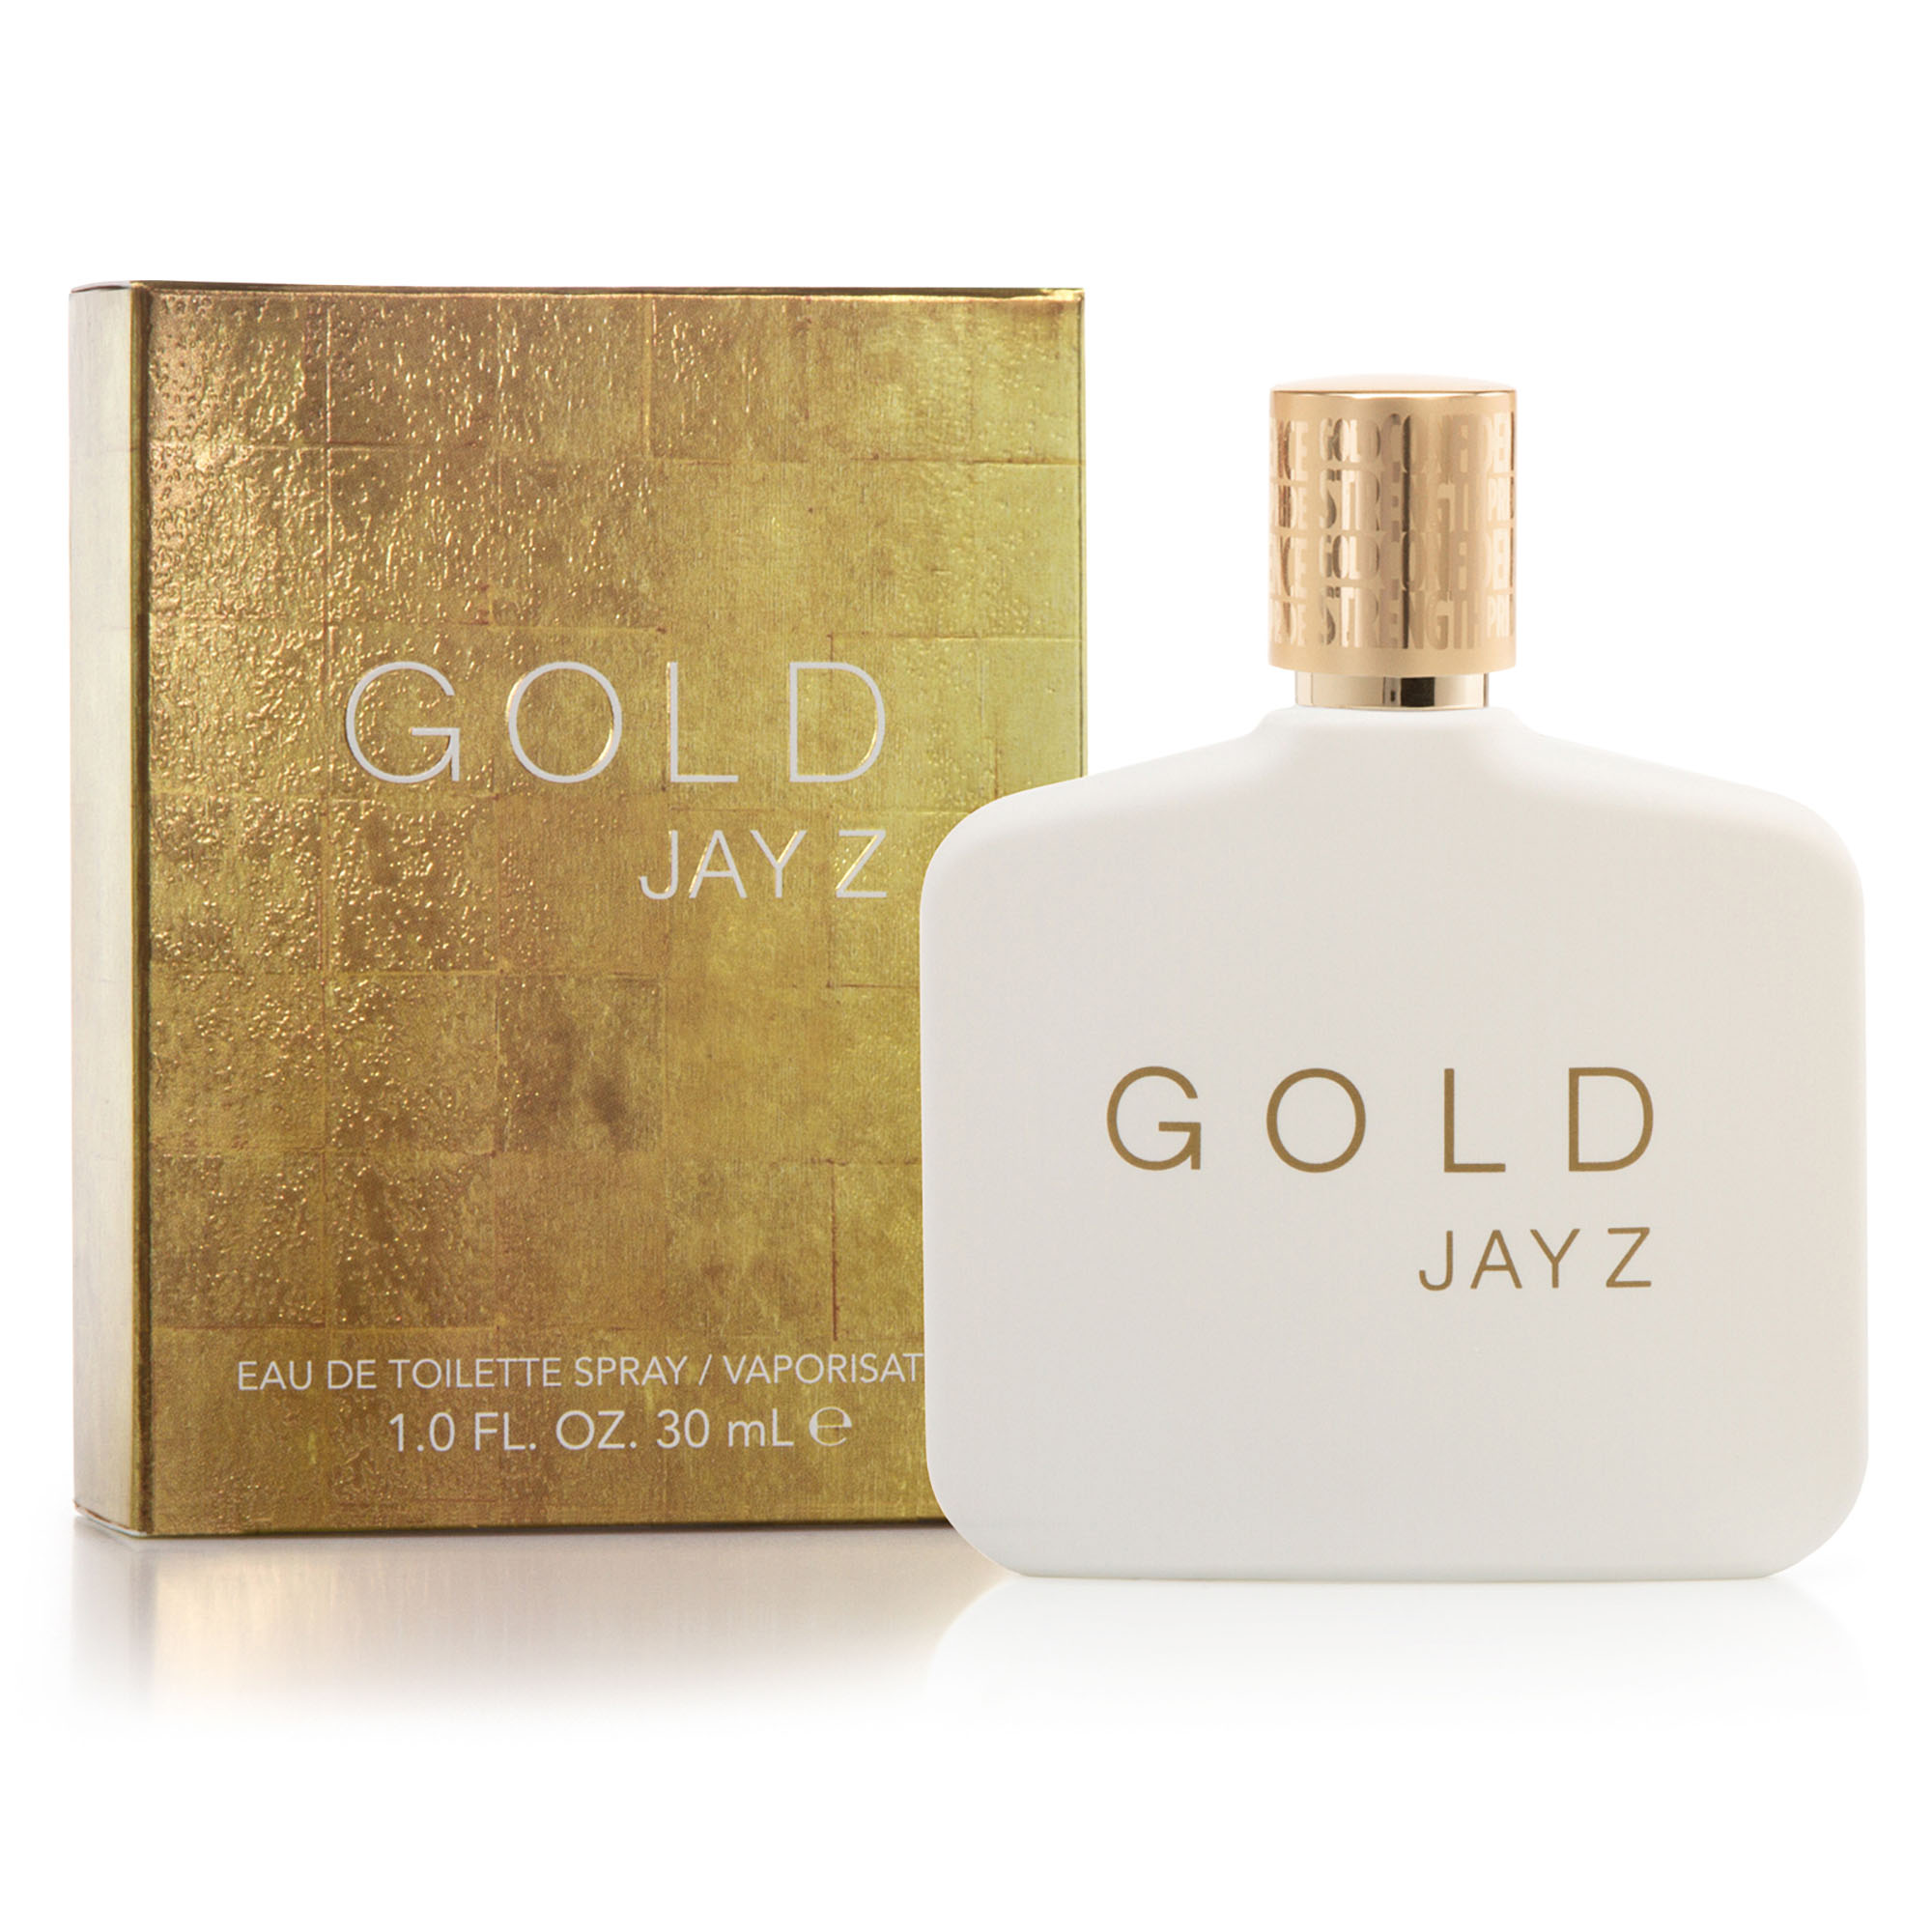 Jay-Z Gold for Men 1 oz. Eau de Toilette Spray by Jay-Z